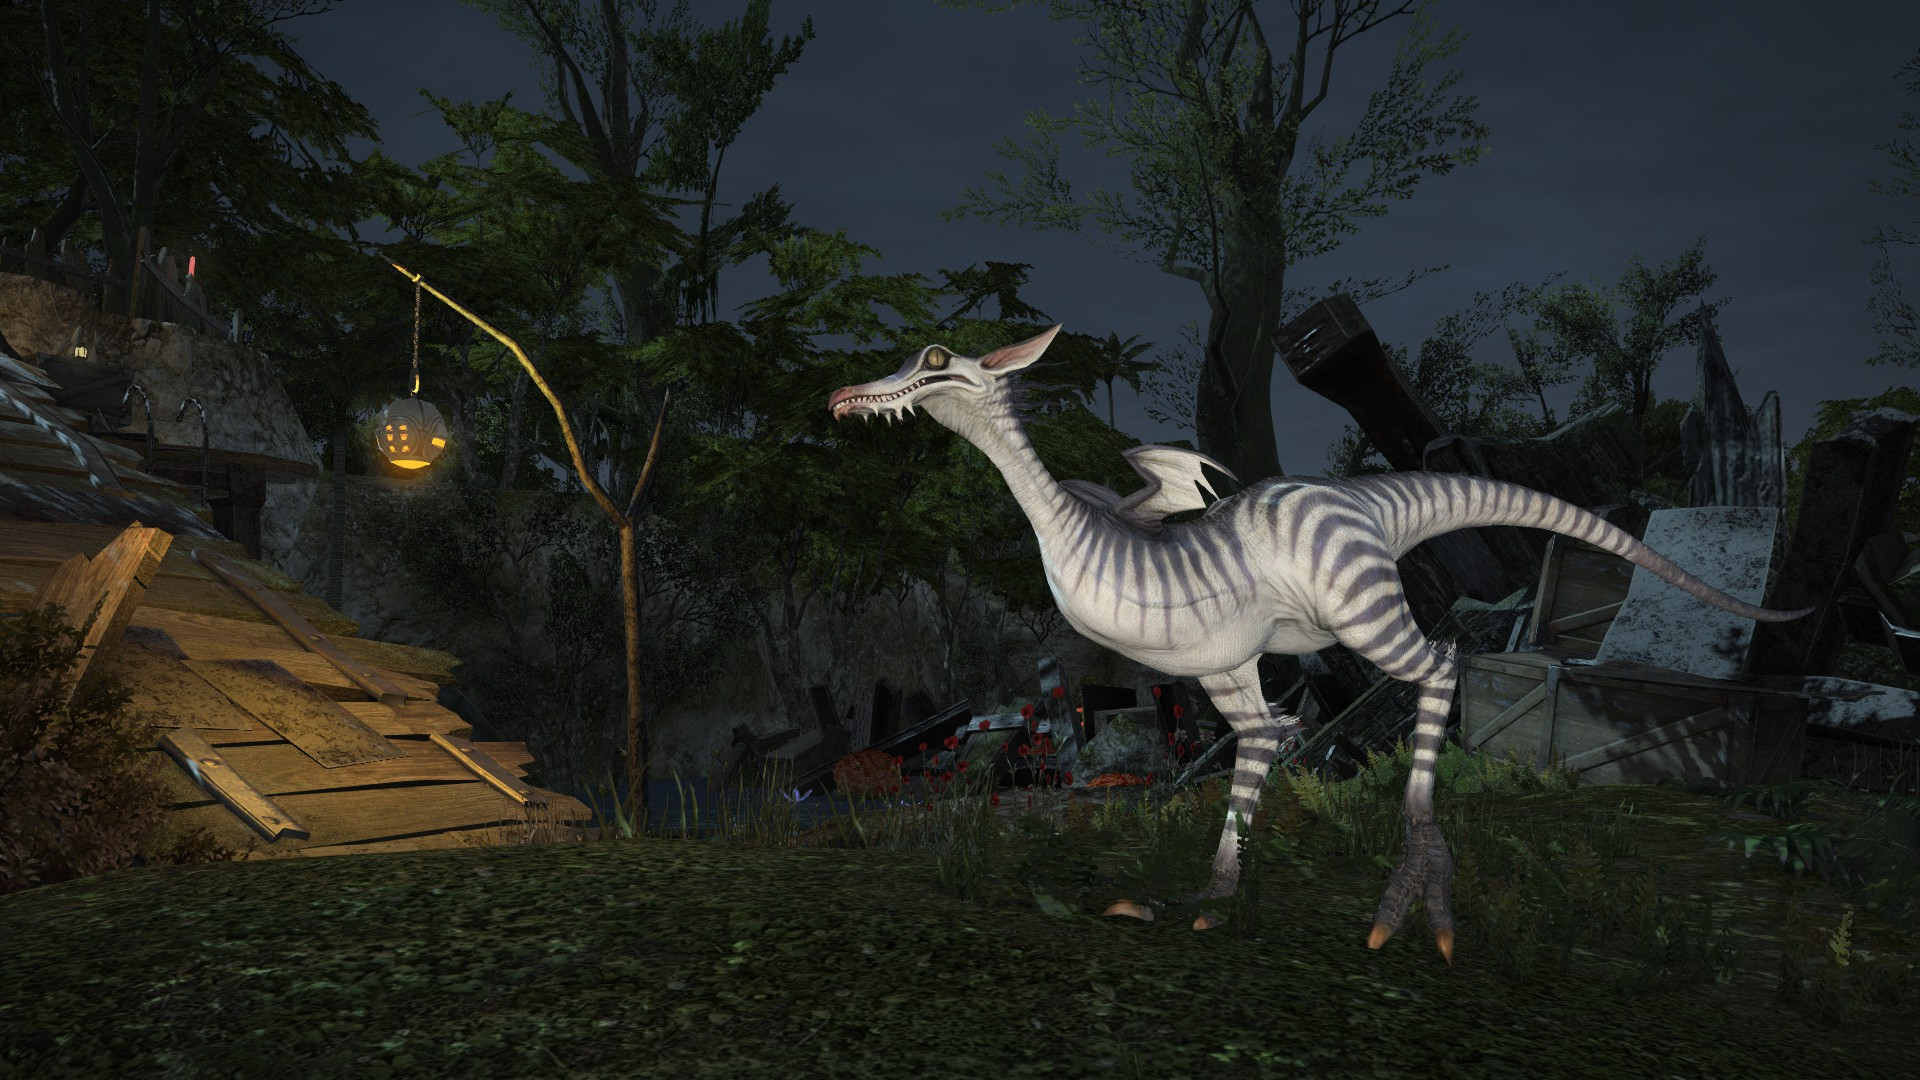 Final Fantasy XIV Guide: Complete Walkthrough for the